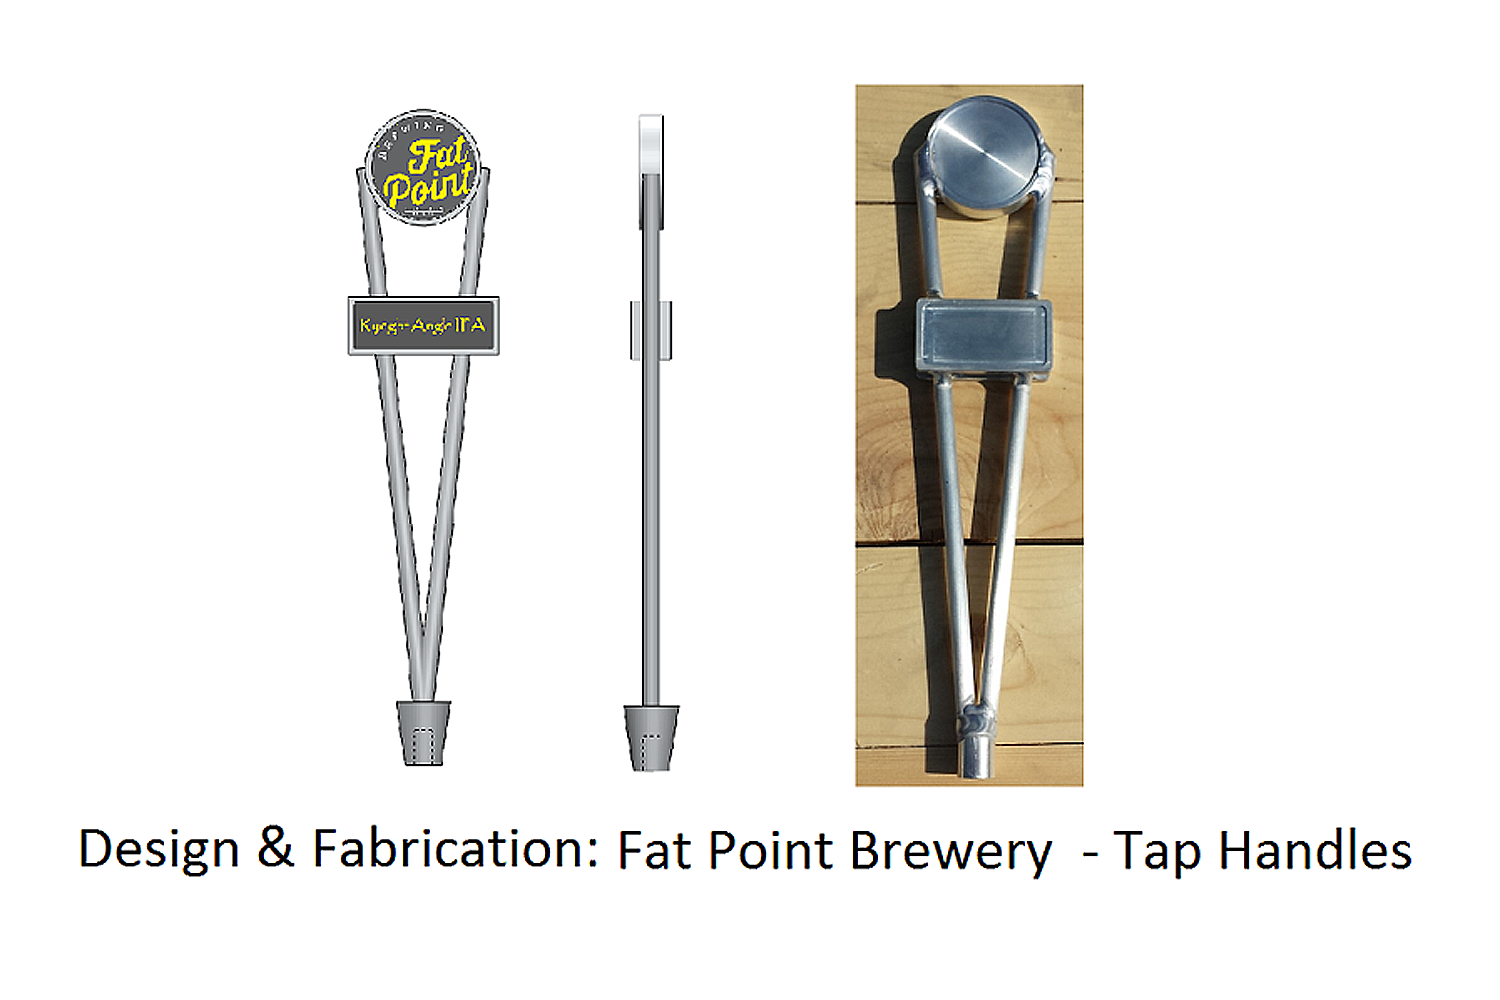 aluminum hand crafted beer tap handle, creation to manufaturing